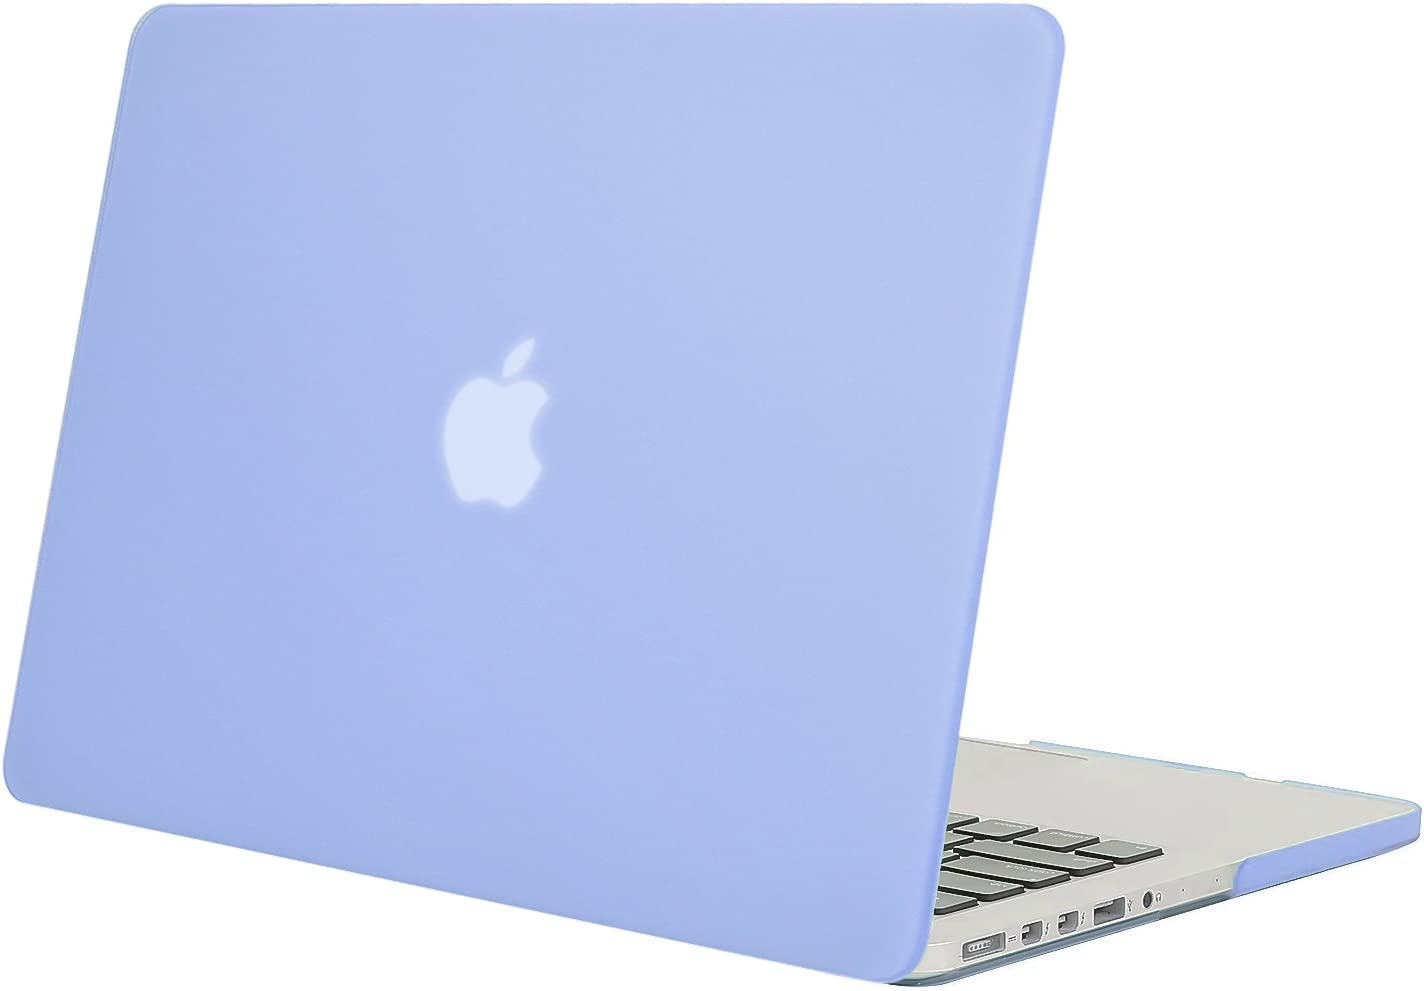 MOSISO Plastic Hard Shell Case Cover Only Compatible with Older Version MacBook Pro Retina 13 Inch (Models: A1502 & A1425) (Release 2015 - end 2012), Serenity Blue